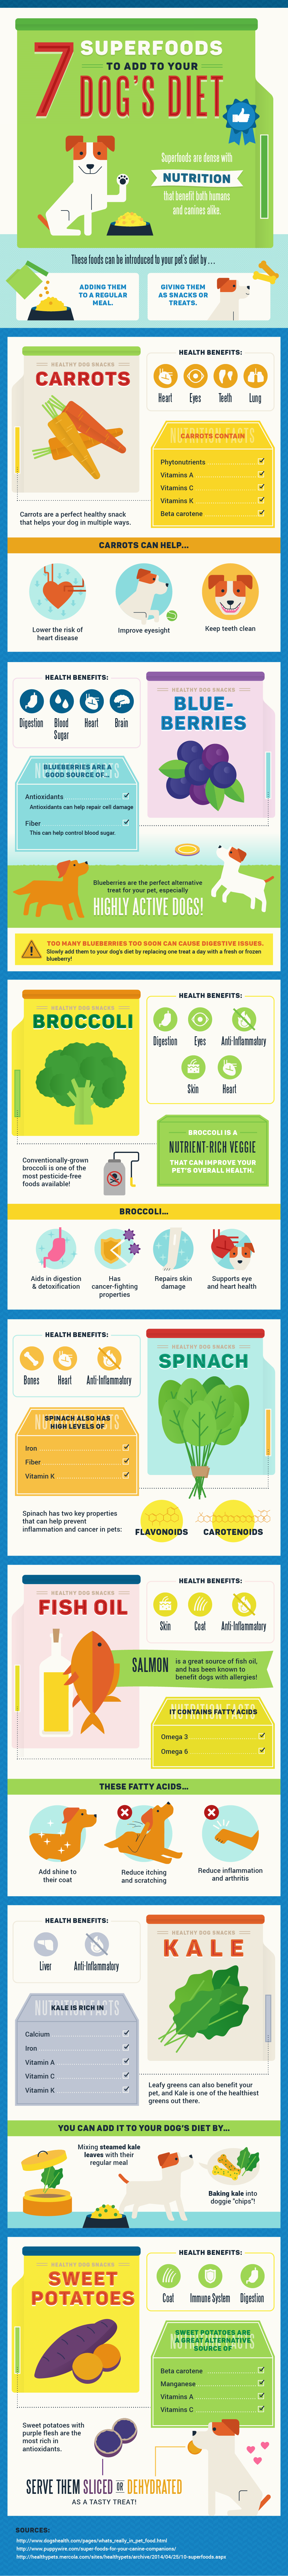 7 Superfoods to Add to Your Dog's Diet - infographic